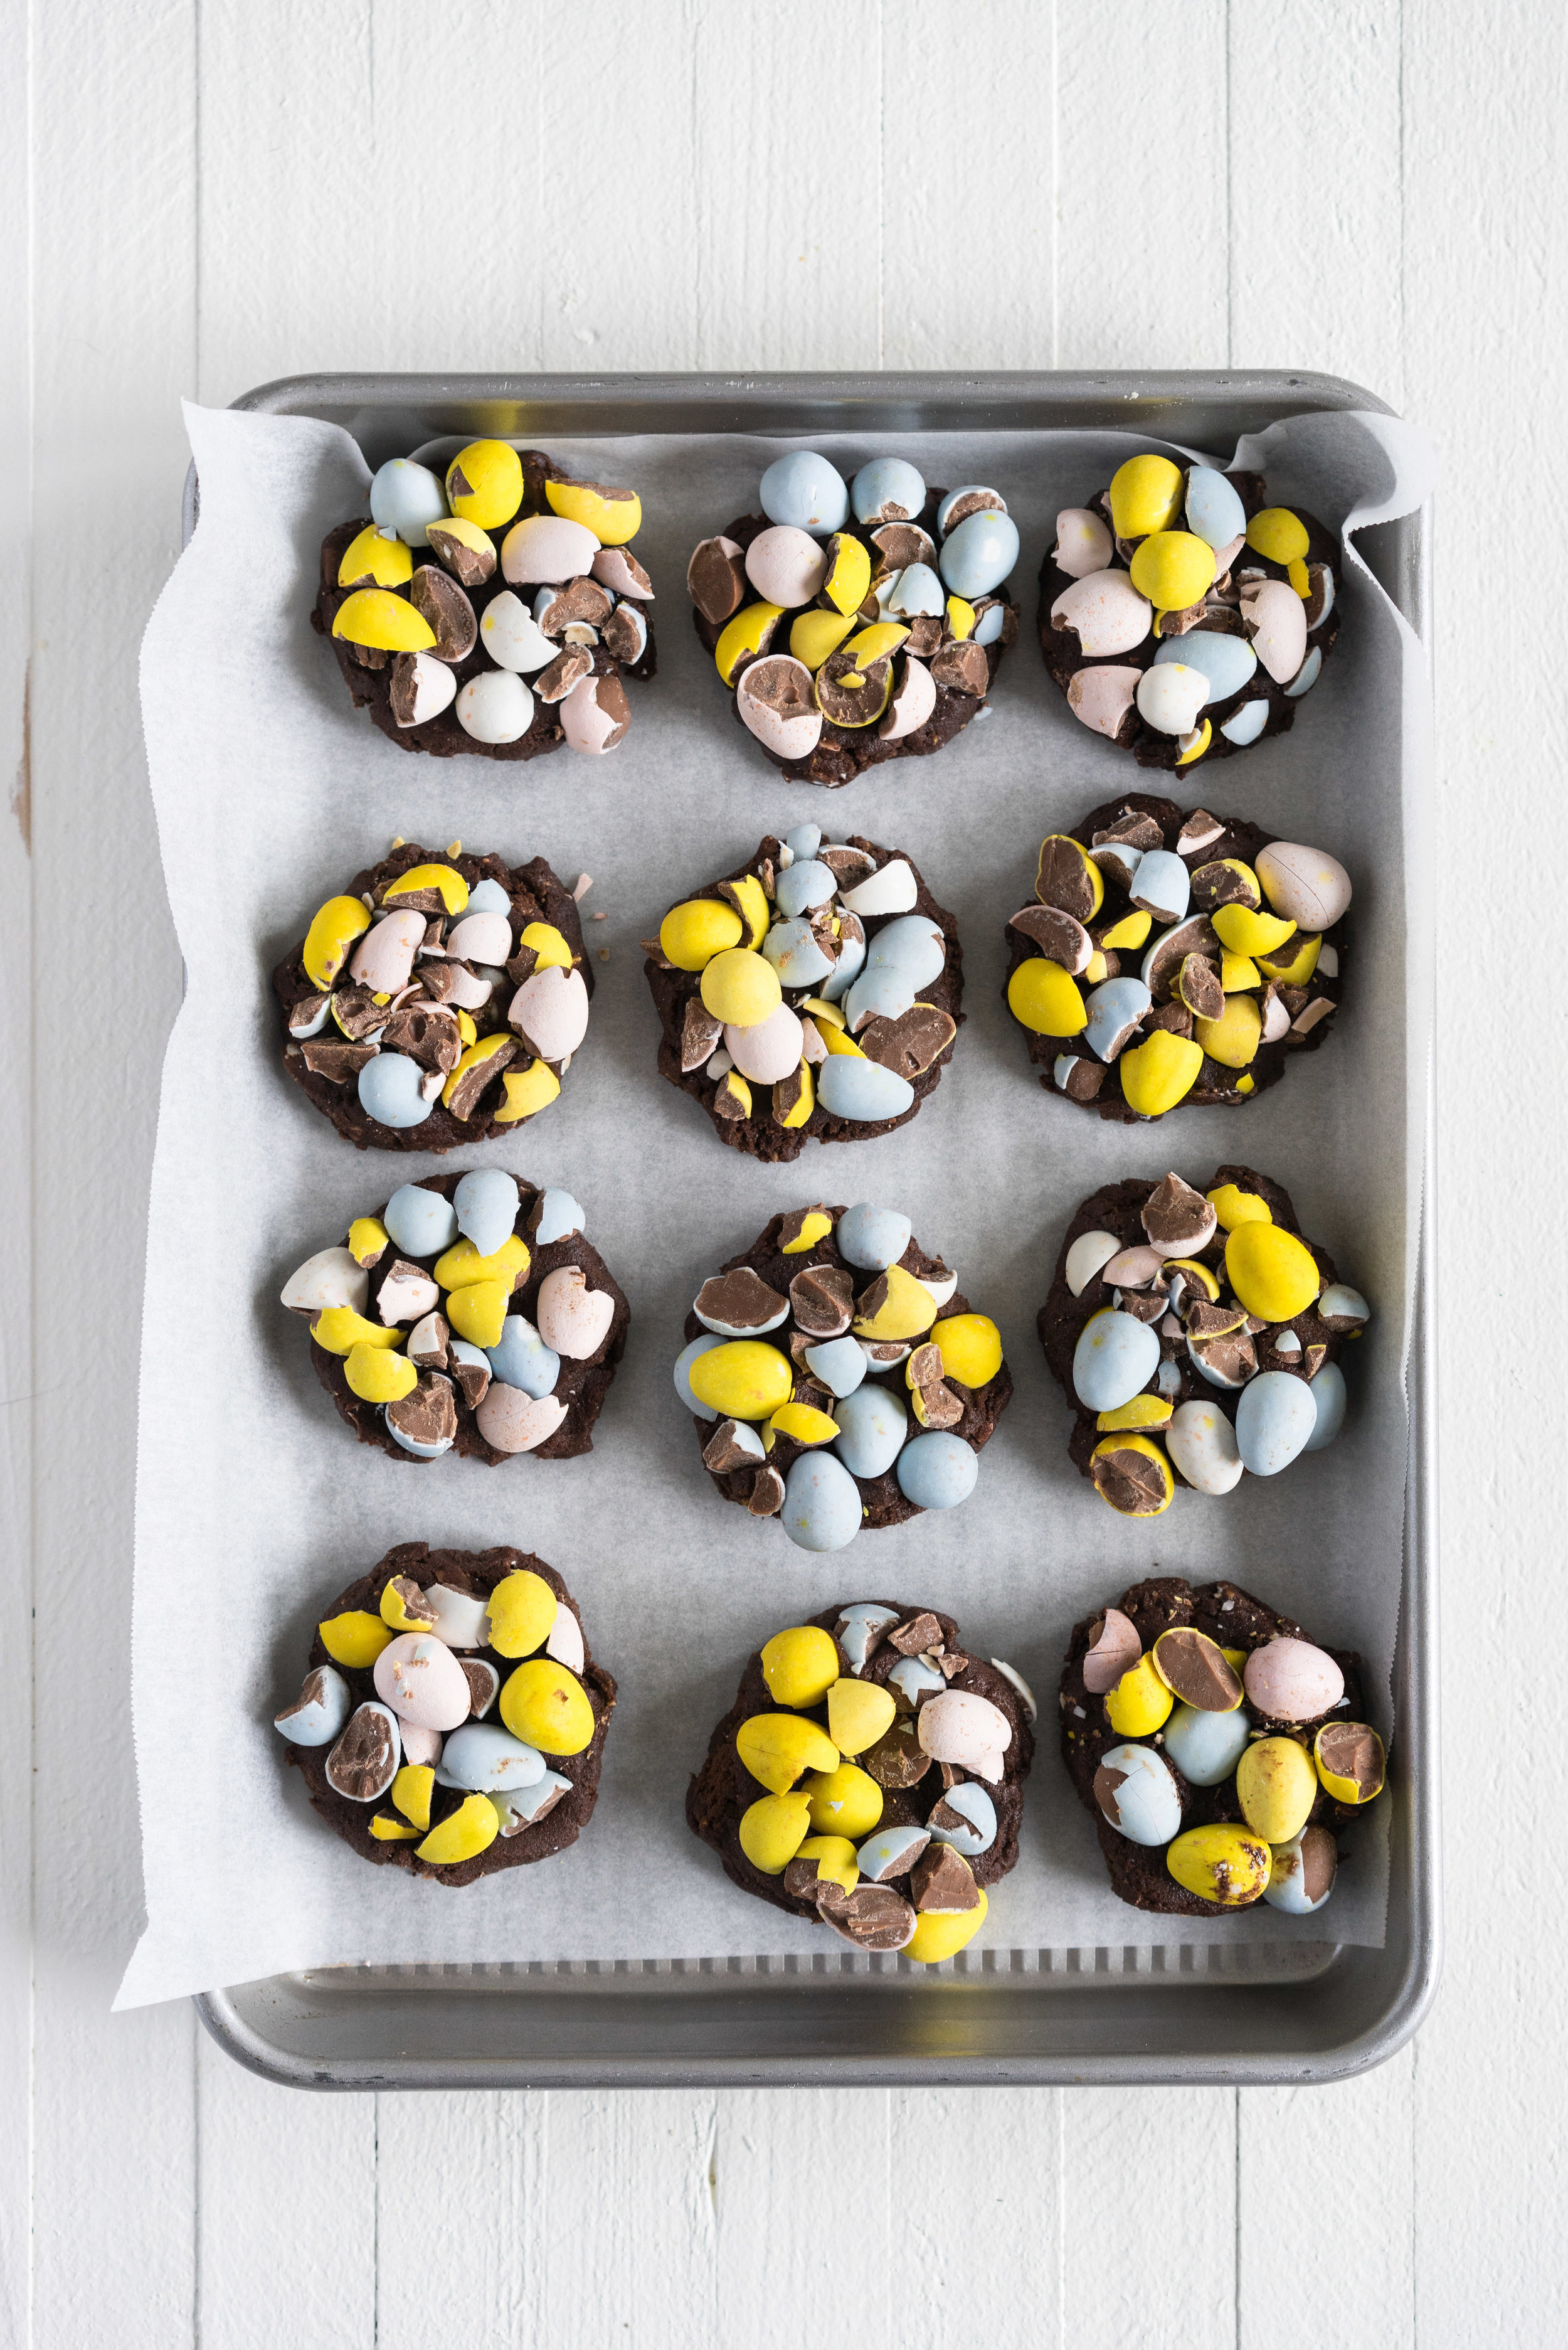 Milk Chocolate Mini Egg Cookies - the perfect addition to your easter baking schedule. These come together quickly, are super fun to make, and insanely delicious. Fudgy and chewy, chocolately and crispy, and loaded up with mini eggs.